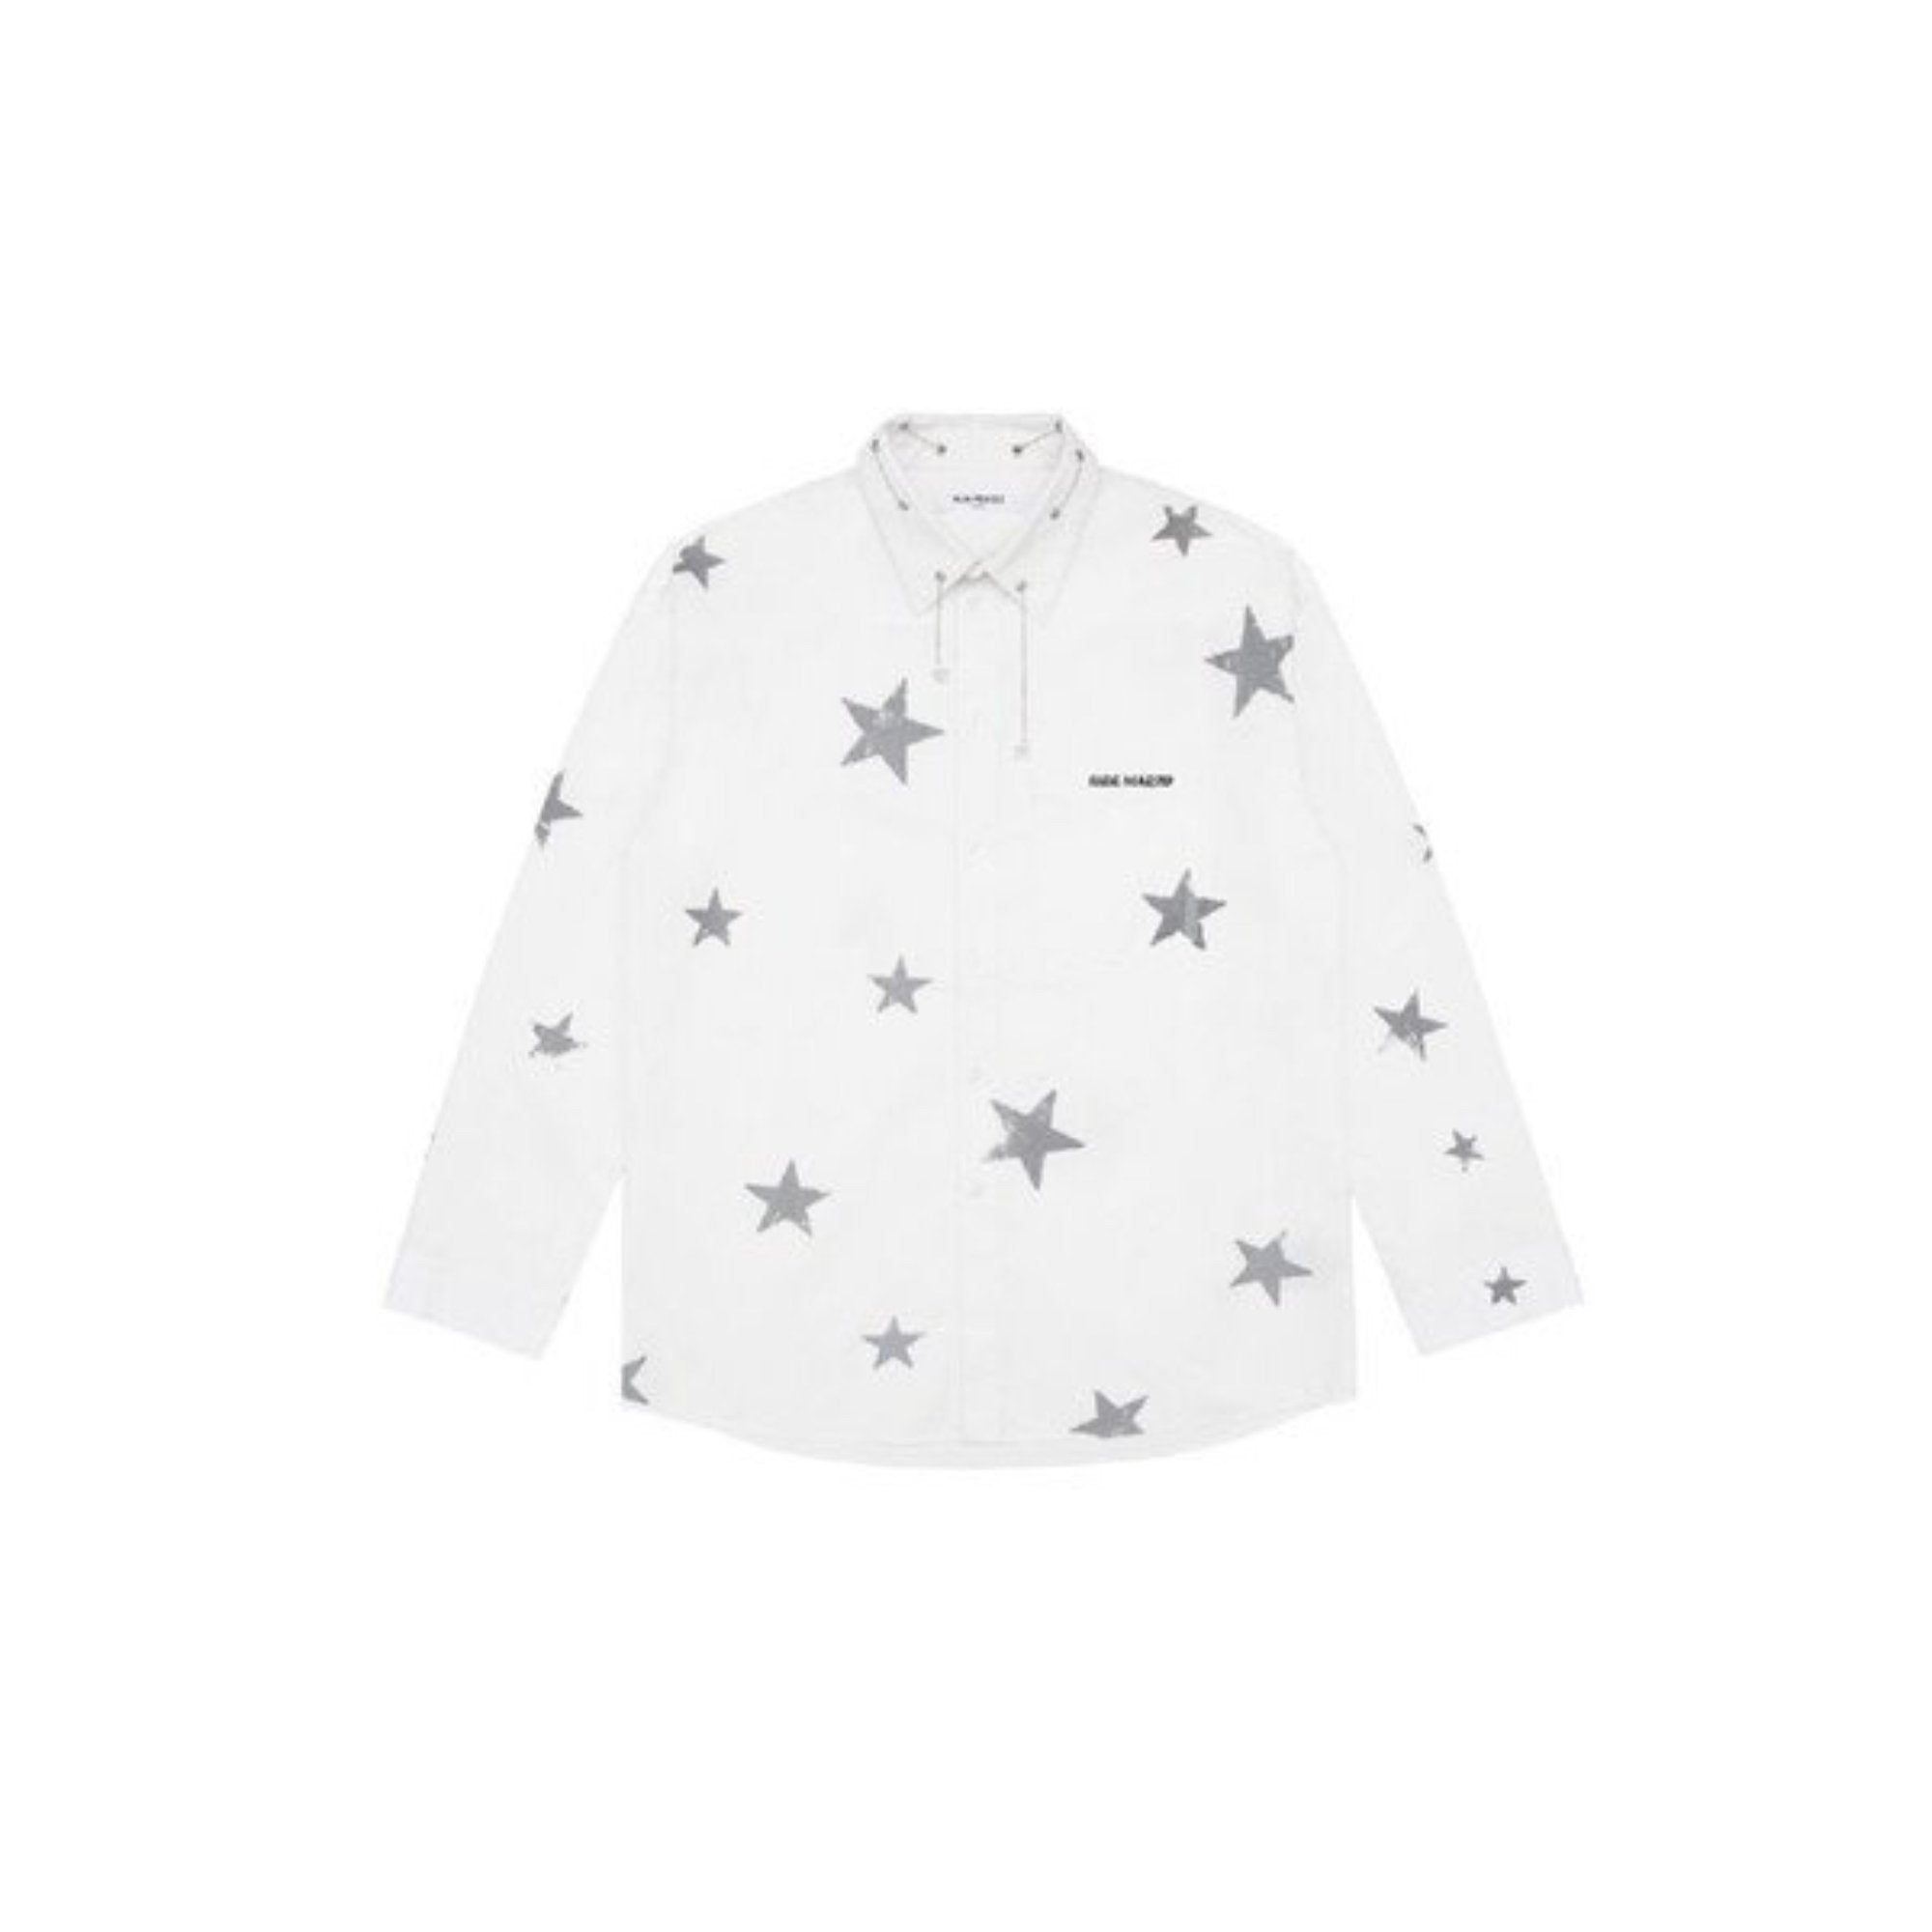 13 DE MARZO 3M Reflect Stars Chain Shirt White | MADA IN CHINA